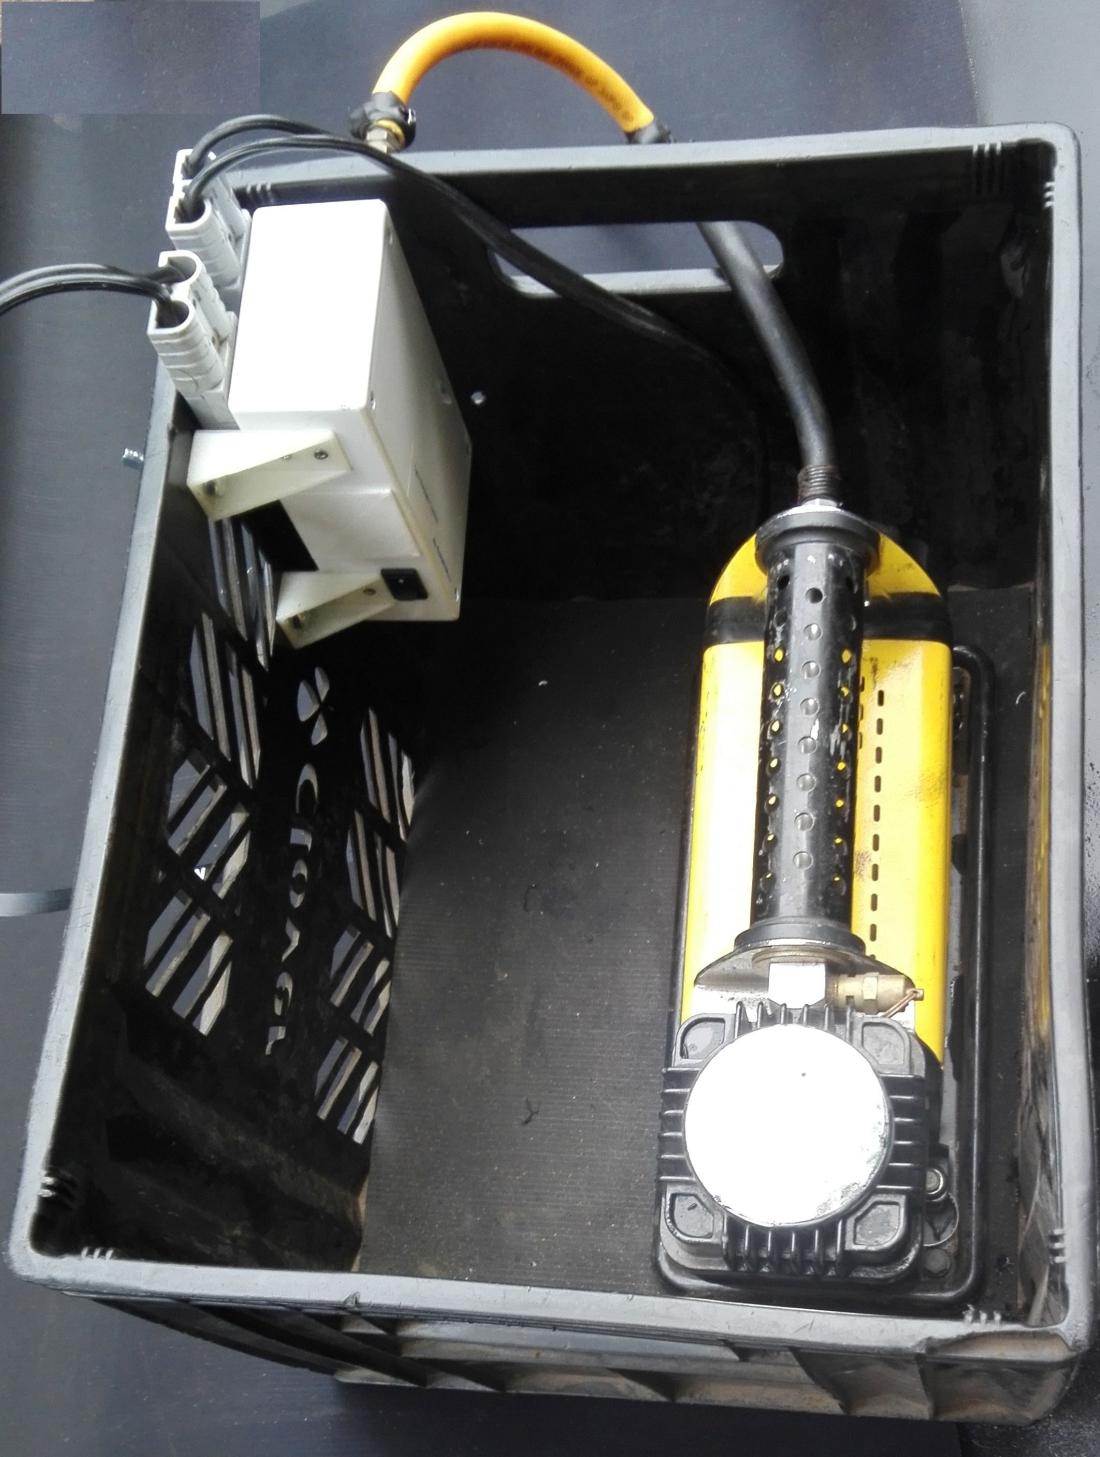 Automatic tyre inflator/deflator control unit in crate